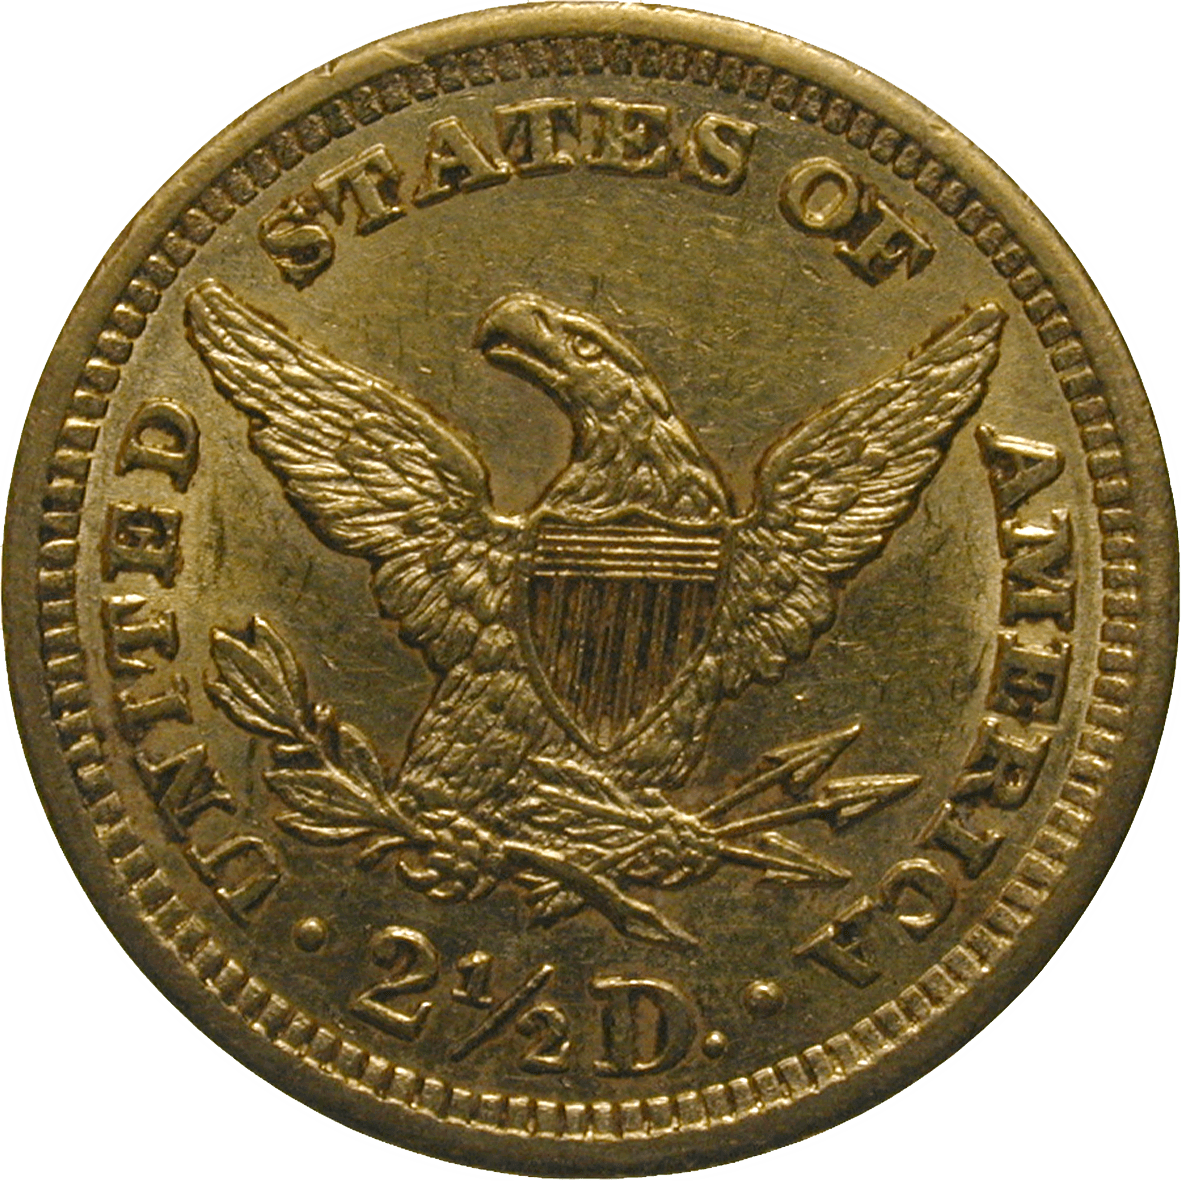 United States of America, 2 1/2 Dollars 1902 (reverse)